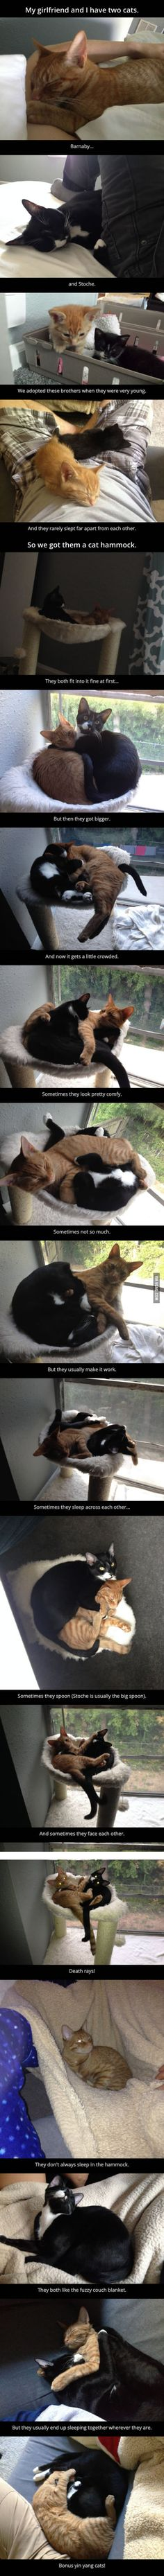 Adorable brother kittens, now cats, who always sleep together